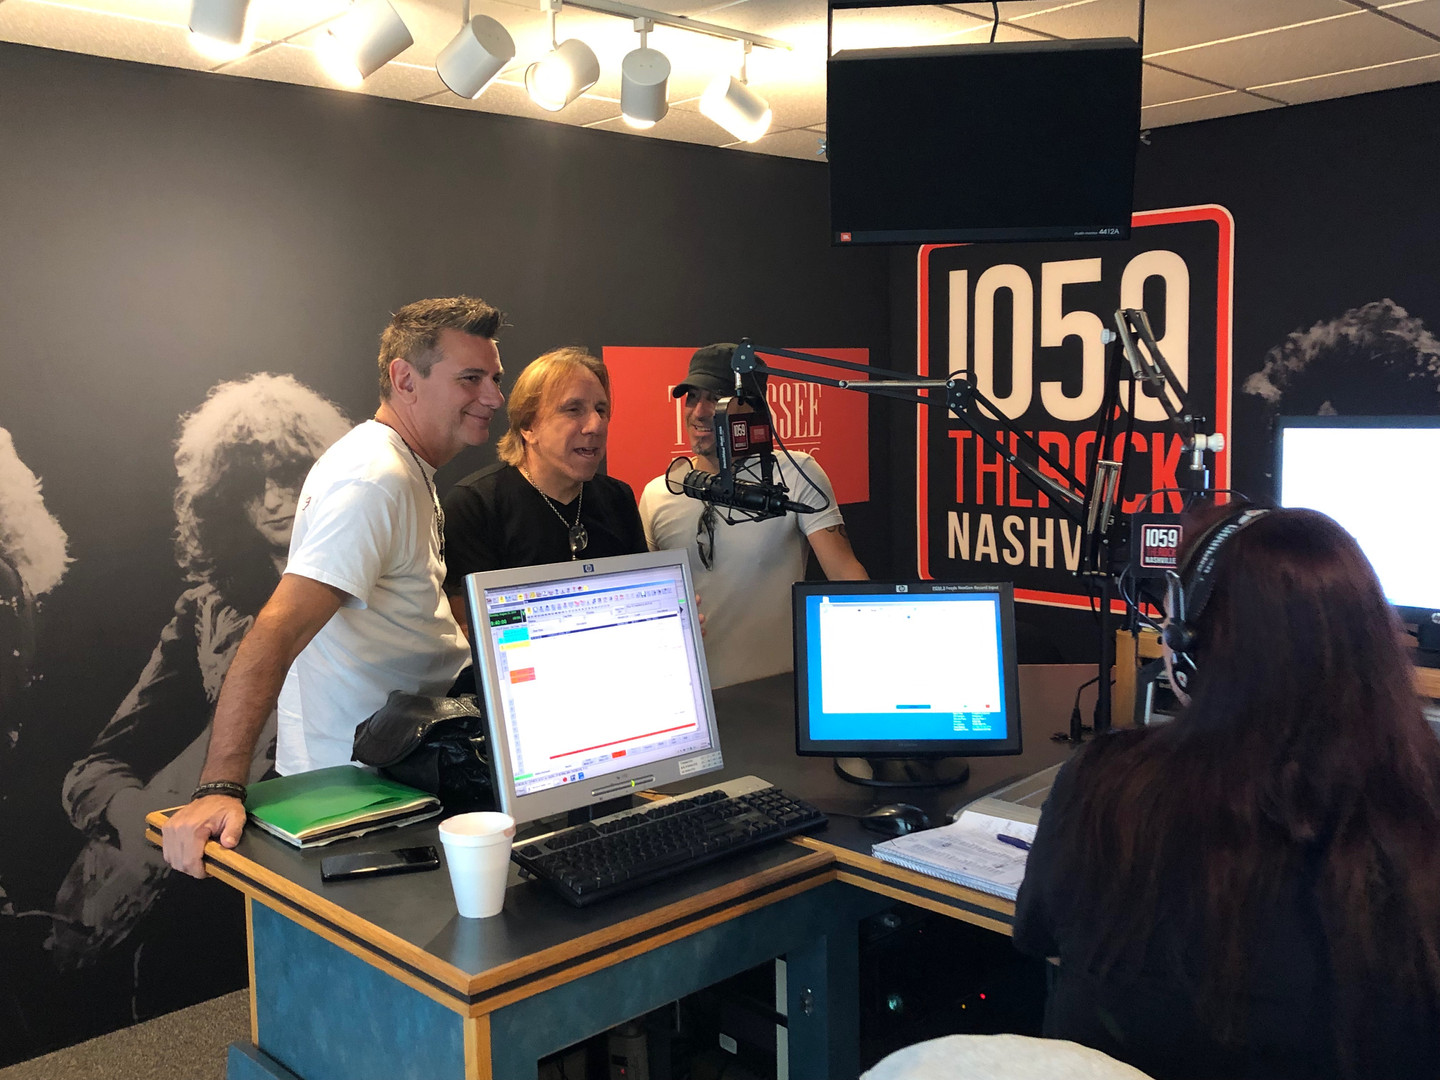 White House On Fire 105.9 the rock - IMG